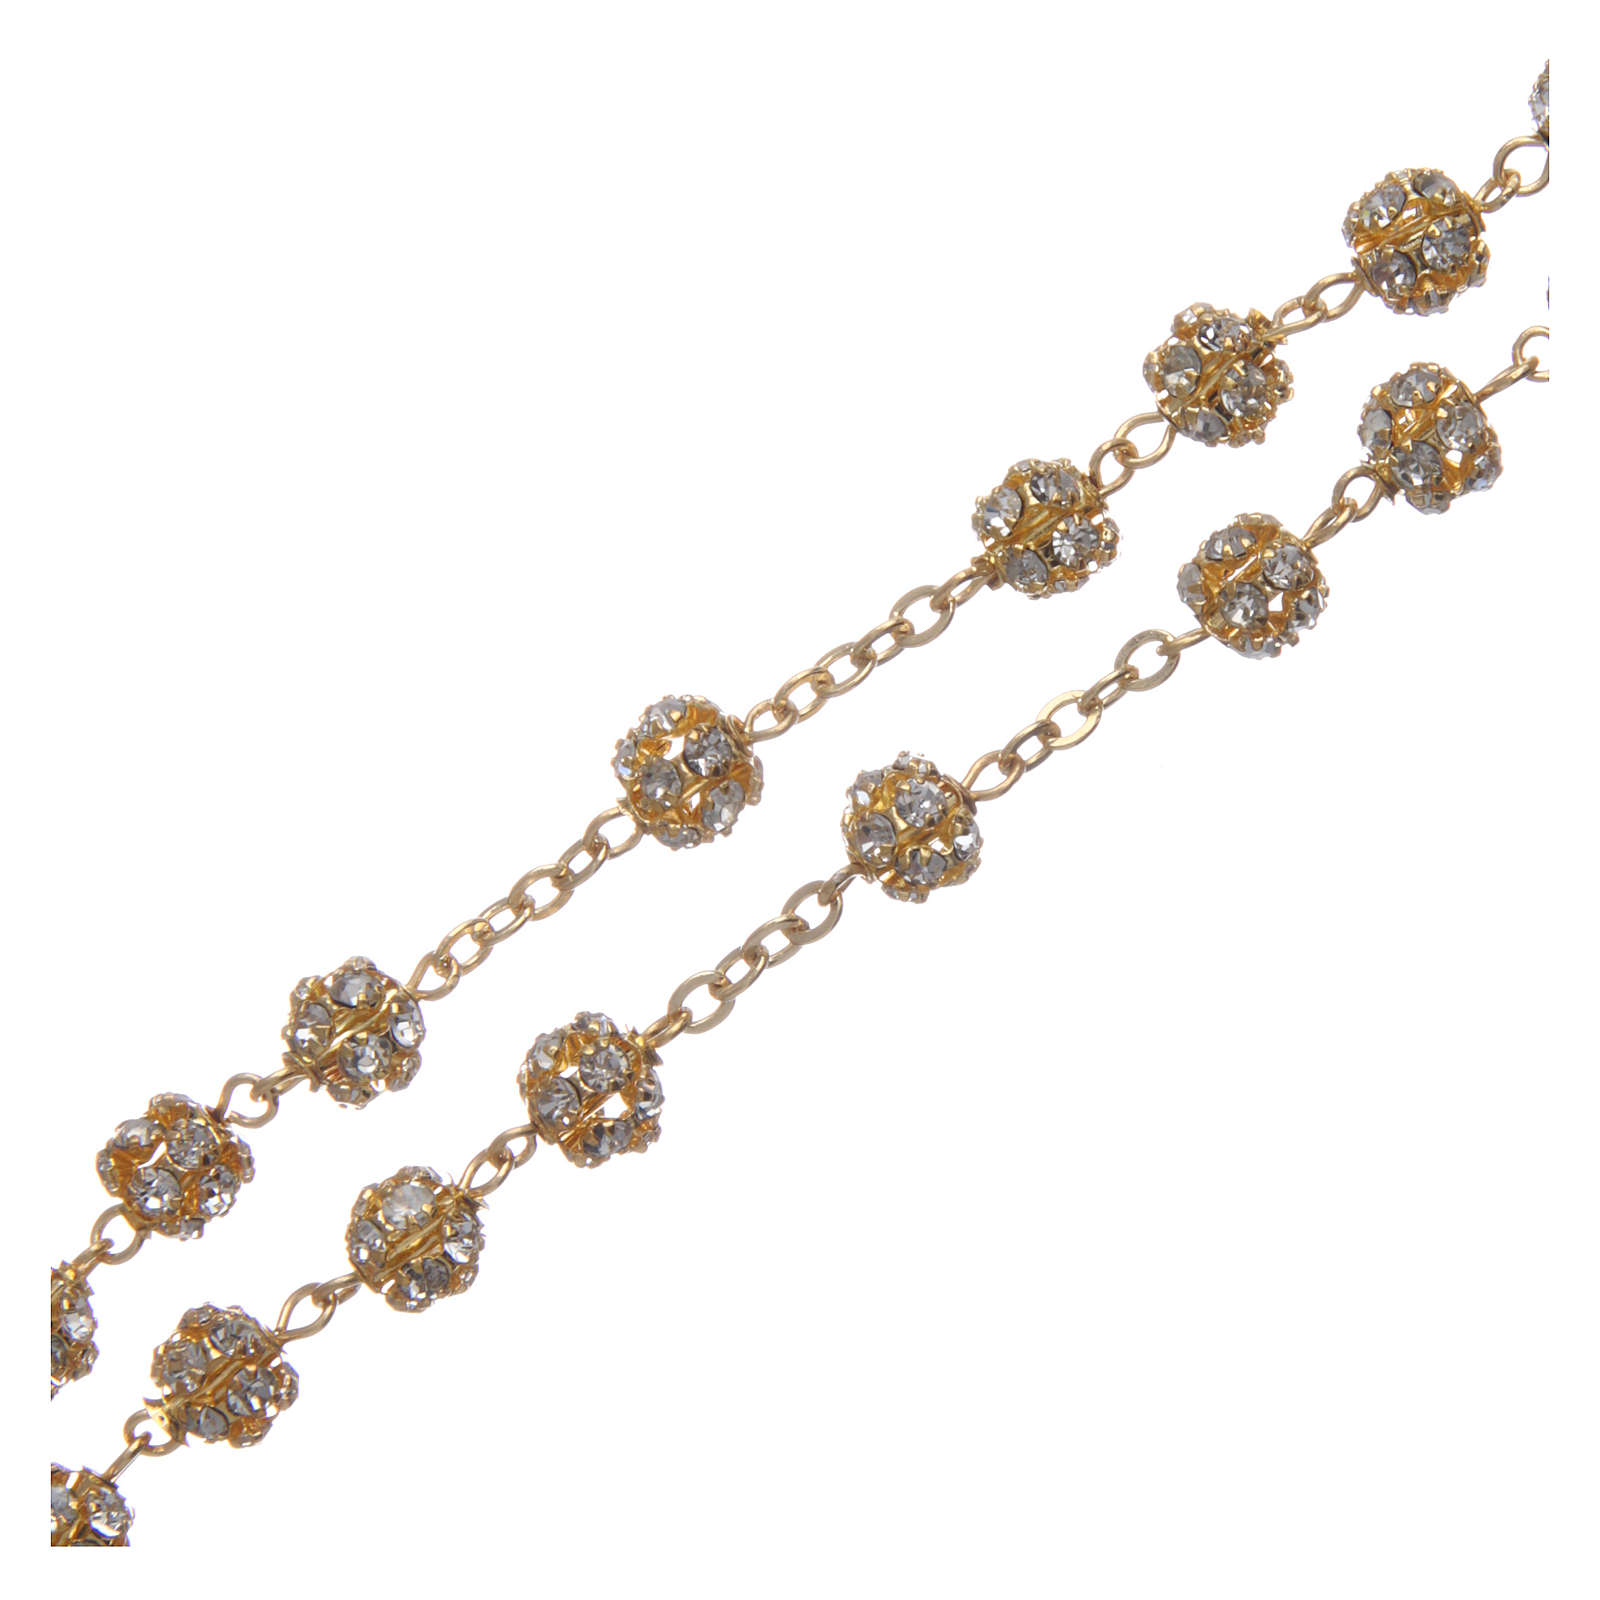 Gold rosary with strass crystal grains 6 mm 4